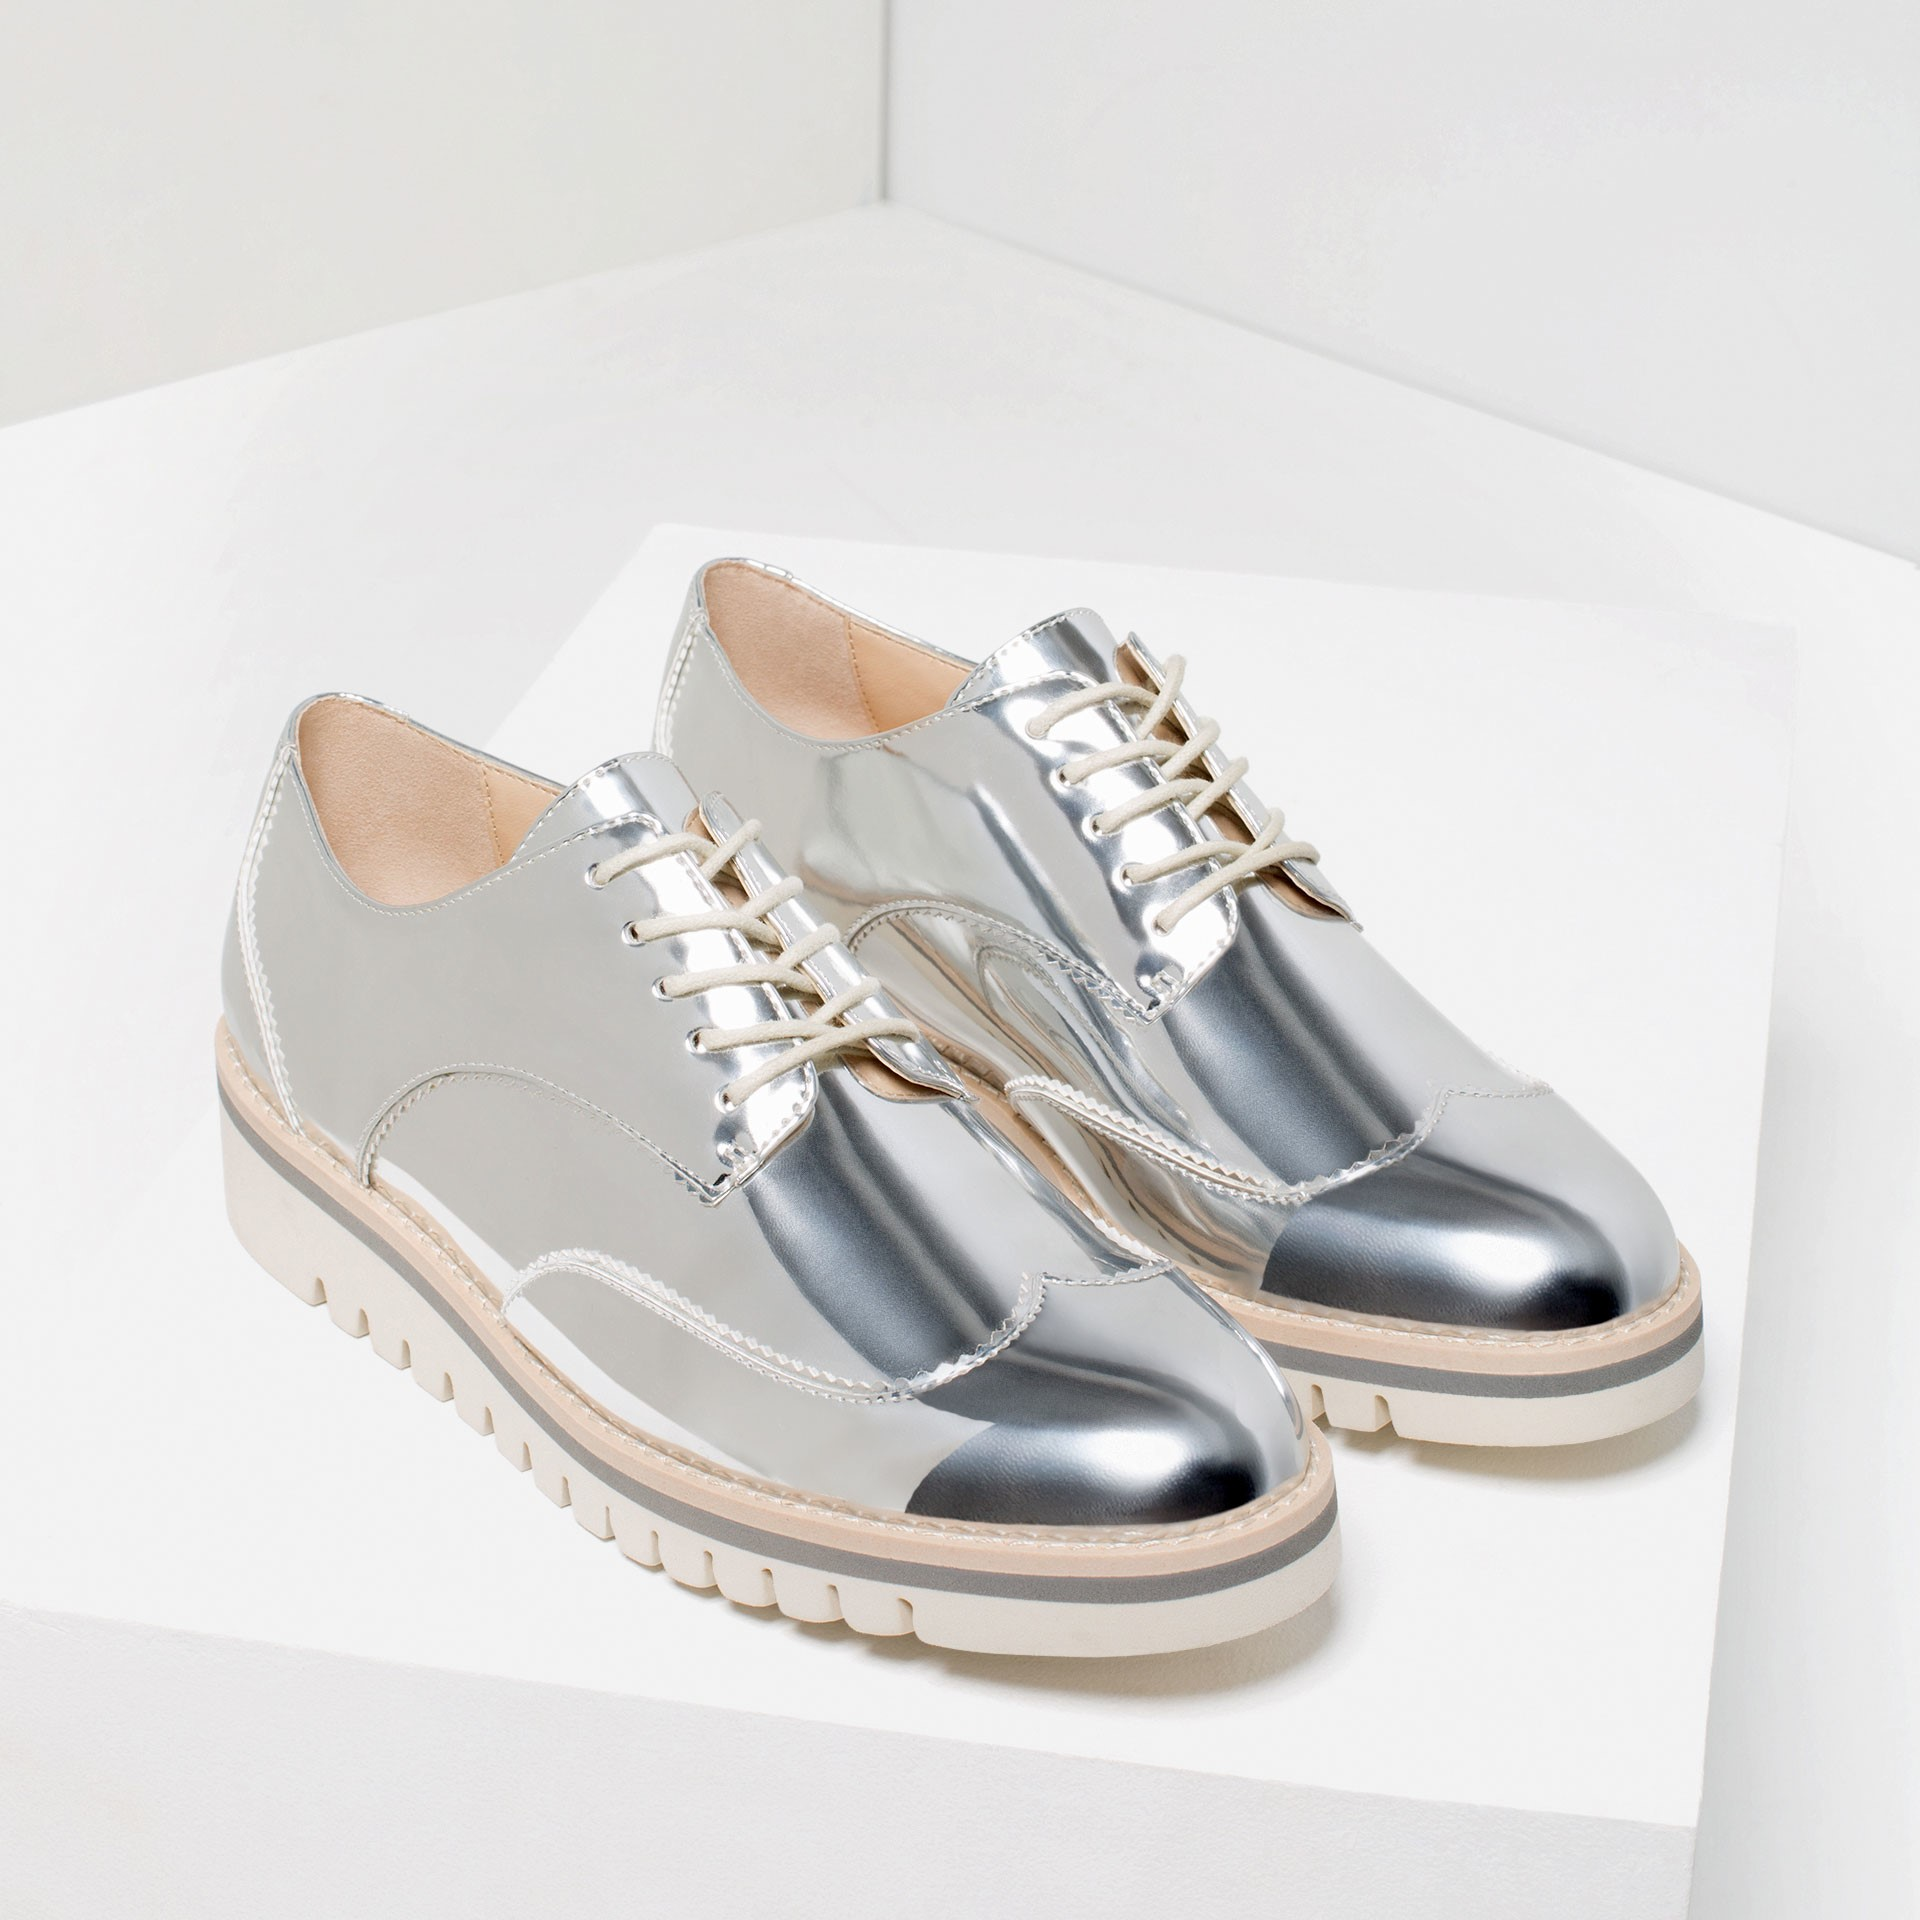 Flat Ballerinas essential shoes Essential Shoes Every Women Should Have – 2018 Flat Ballerinas